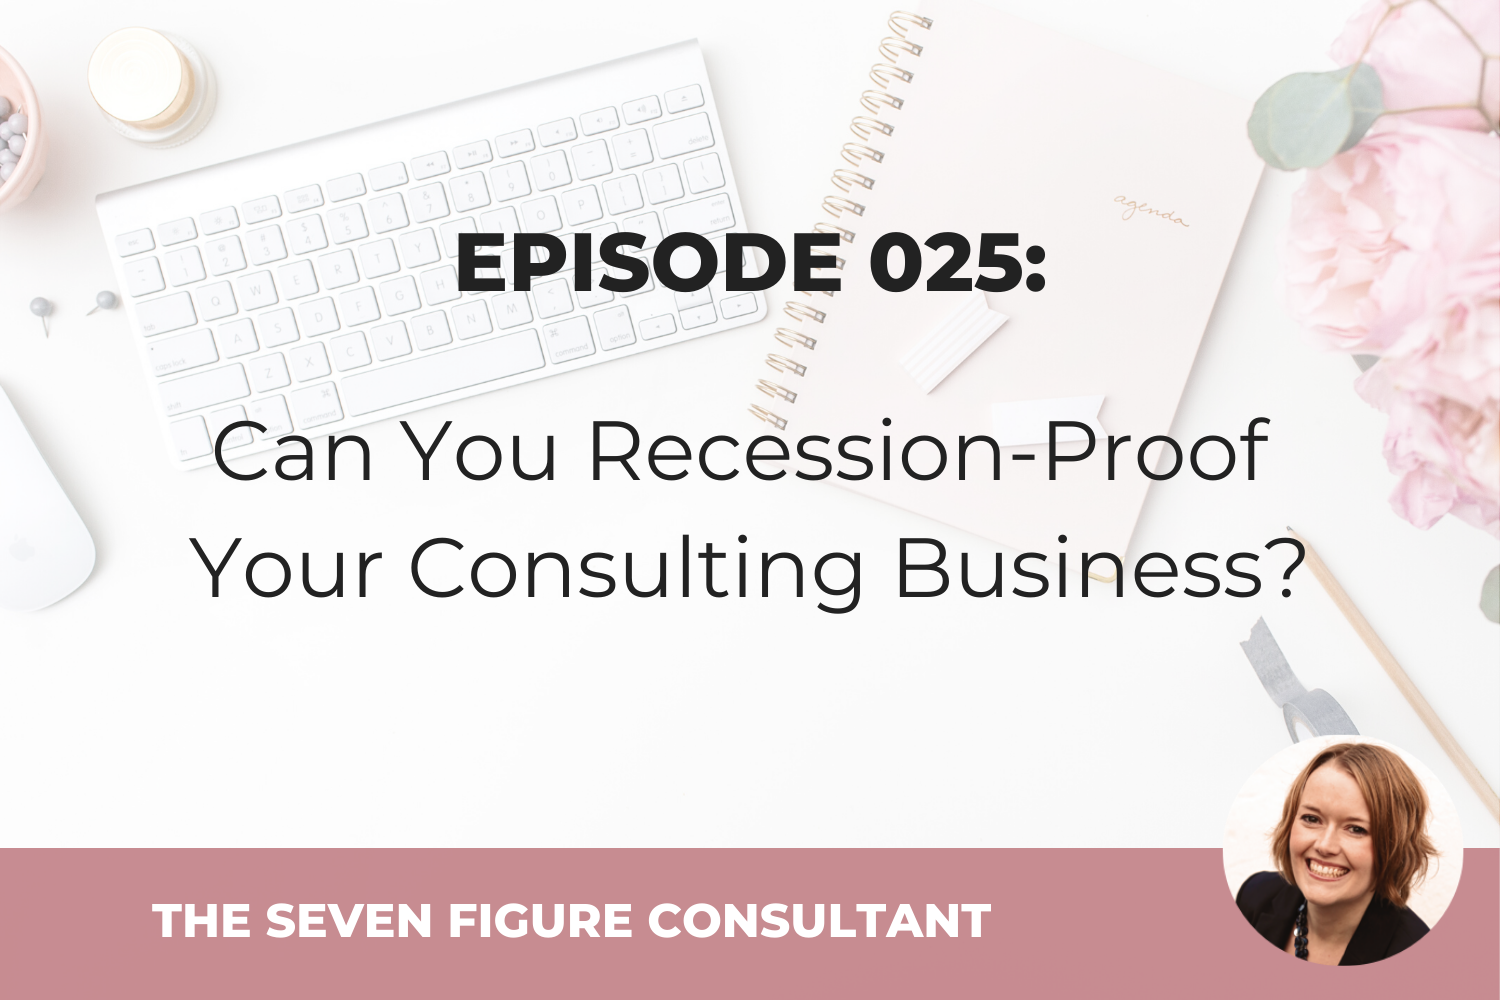 Episode 025: Can You Recession-Proof Your Consulting Business?